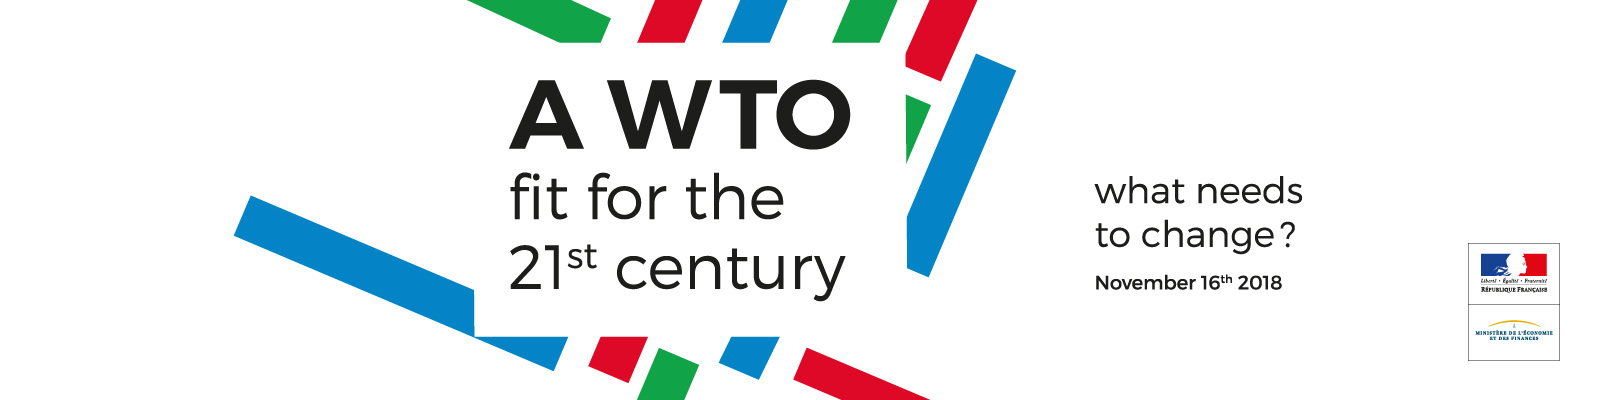 A WTO fit for the 21st century